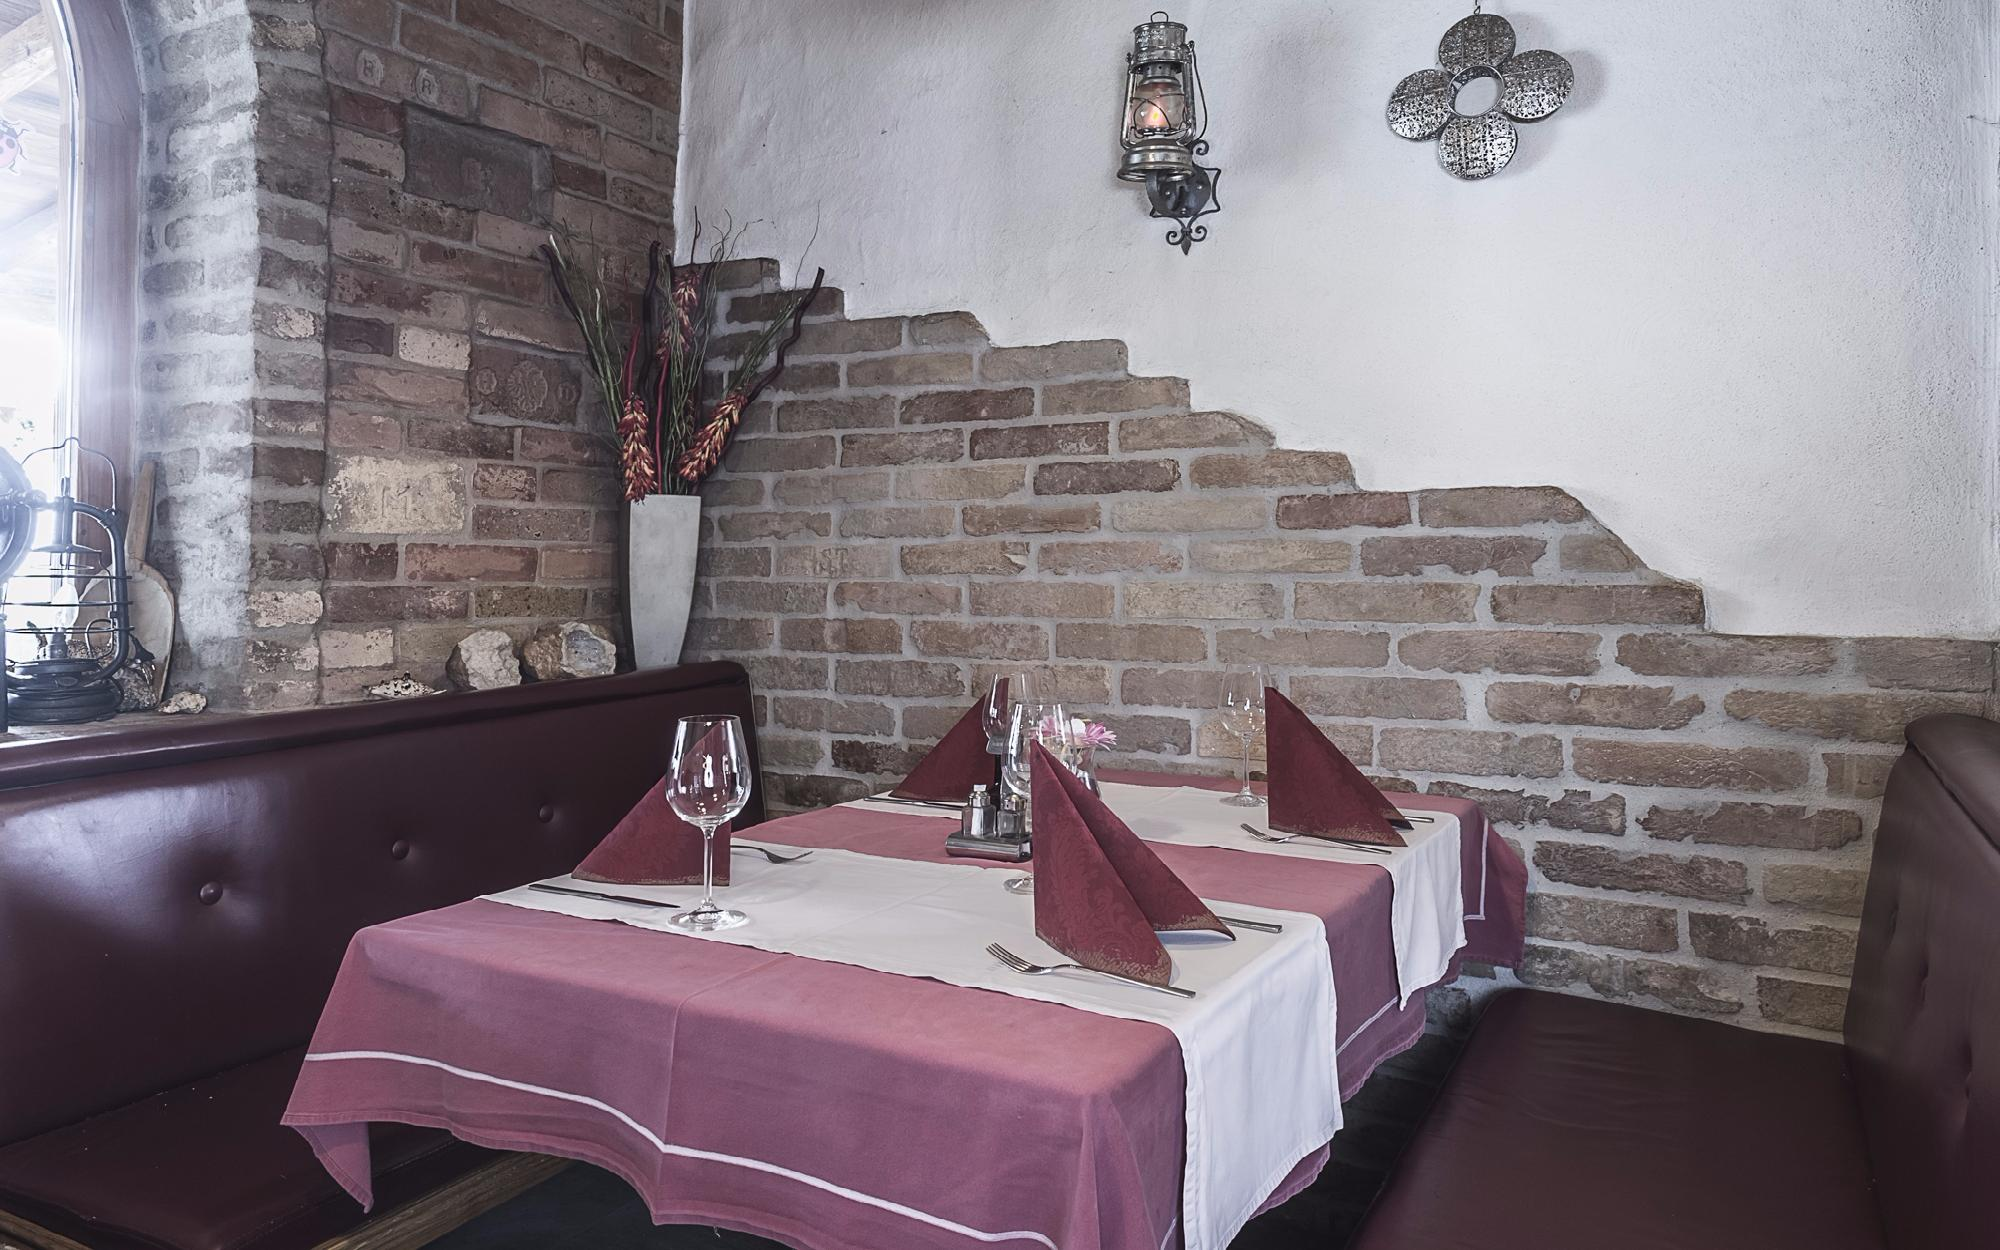 Restaurant in a frequented location of St. Johann in Tyrol